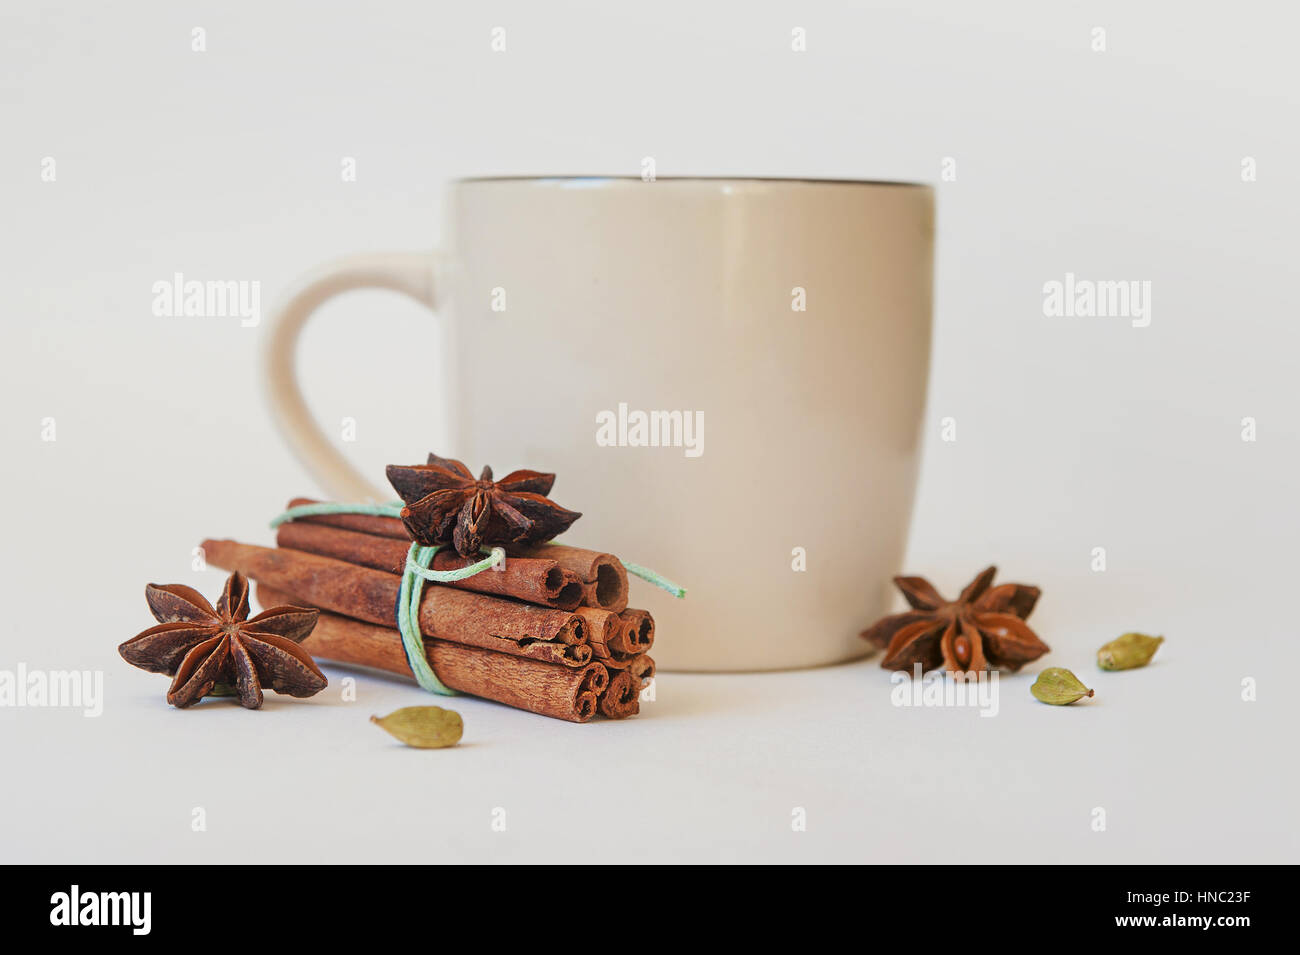 a few anise stars, cassia cinnamon sticks, dried orange rings and fruit tea on the tablecloth - Stock Image